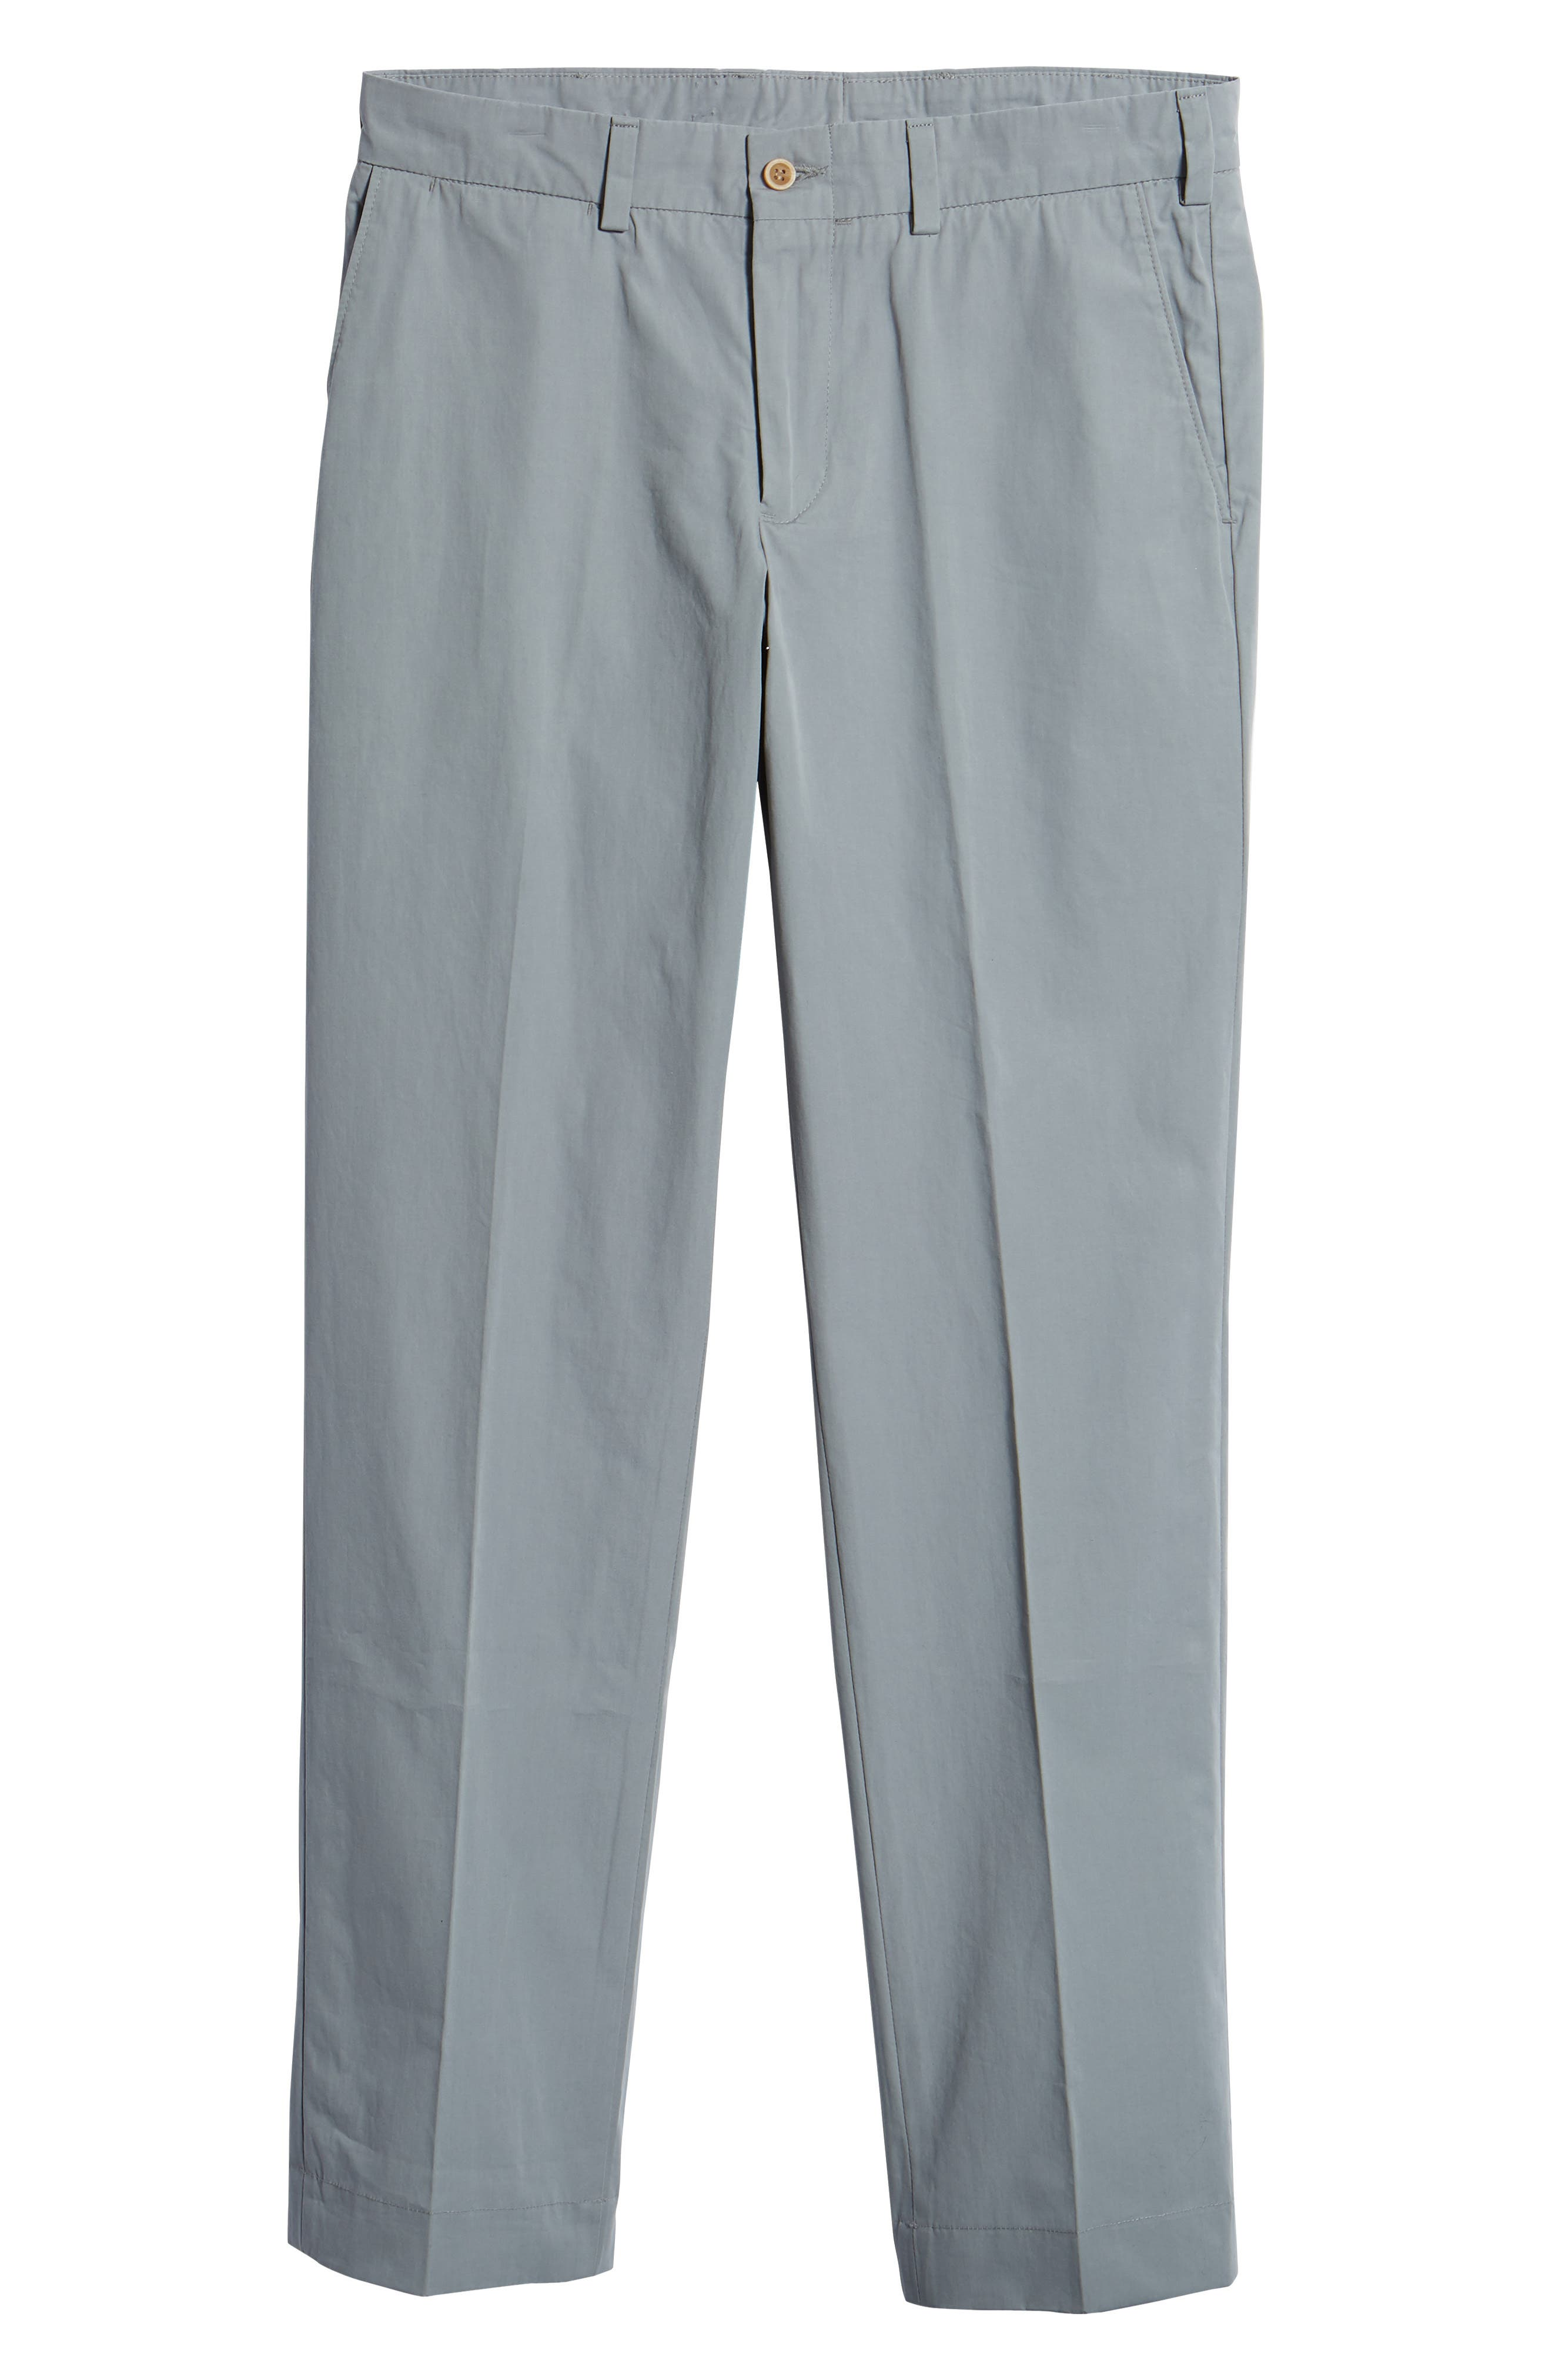 M3 Straight Fit Flat Front Tropical Poplin Pants,                             Alternate thumbnail 6, color,                             050